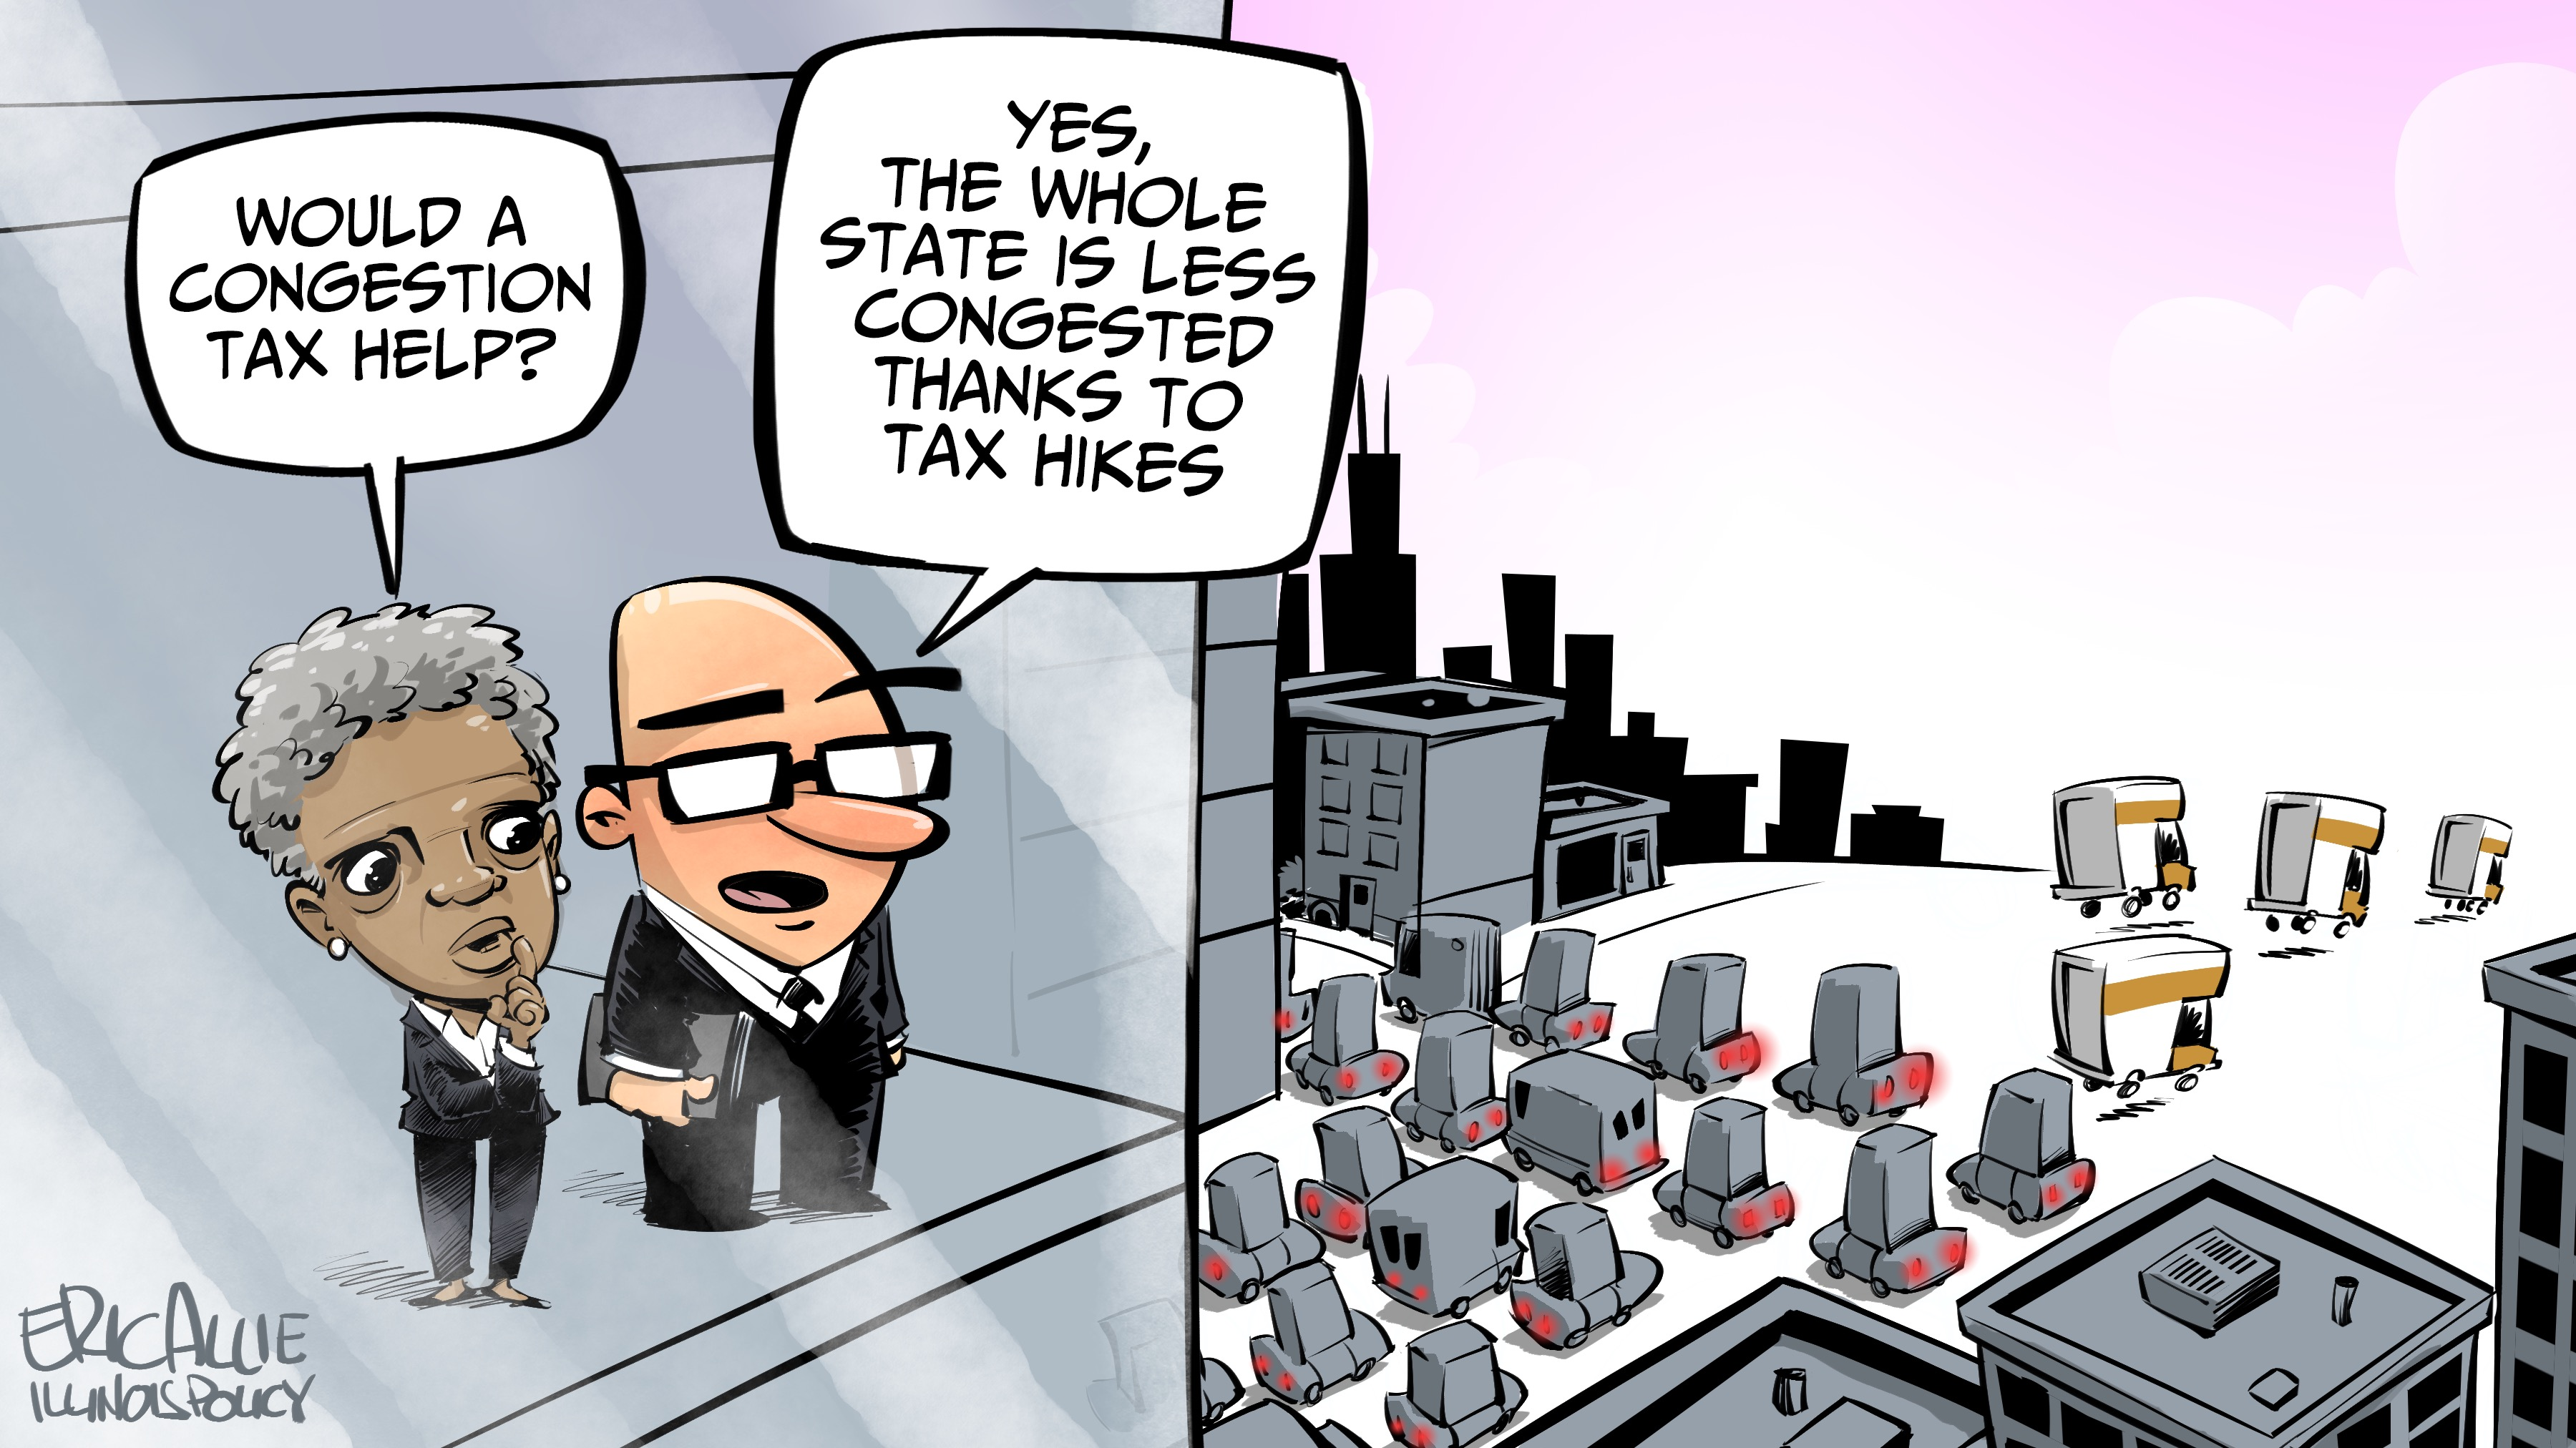 Chicago congestion tax hike